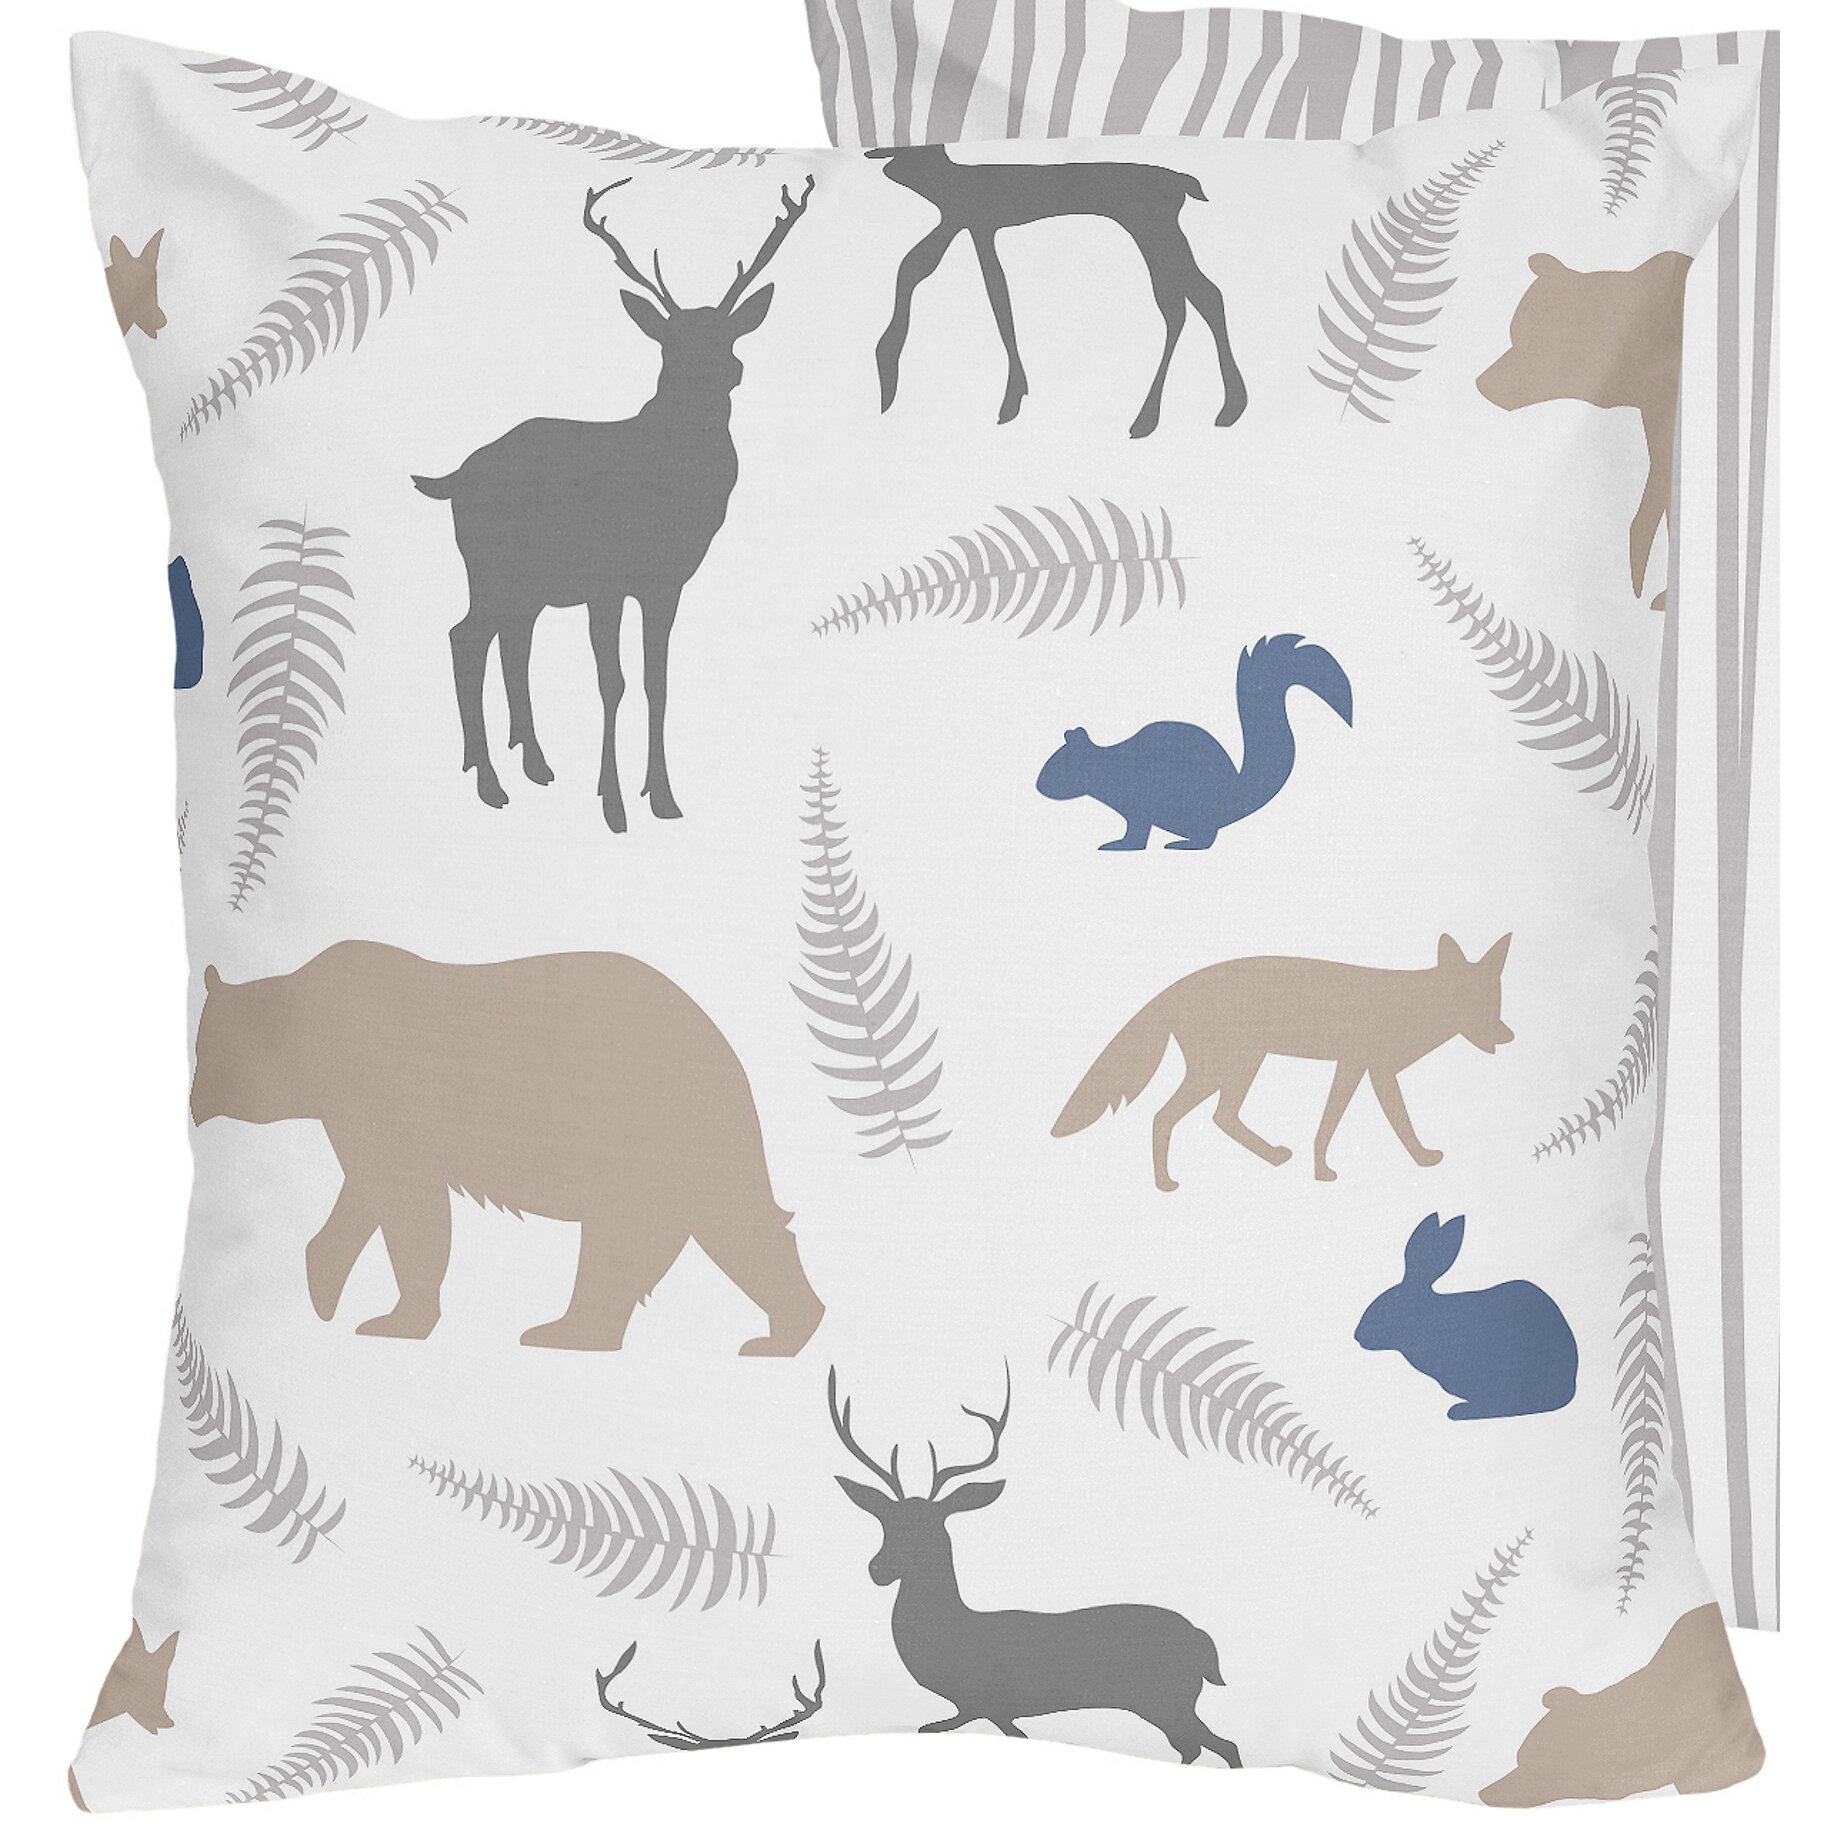 Sweet Jojo Designs Woodland Animals Decorative Accent Throw Pillow & Reviews Wayfair